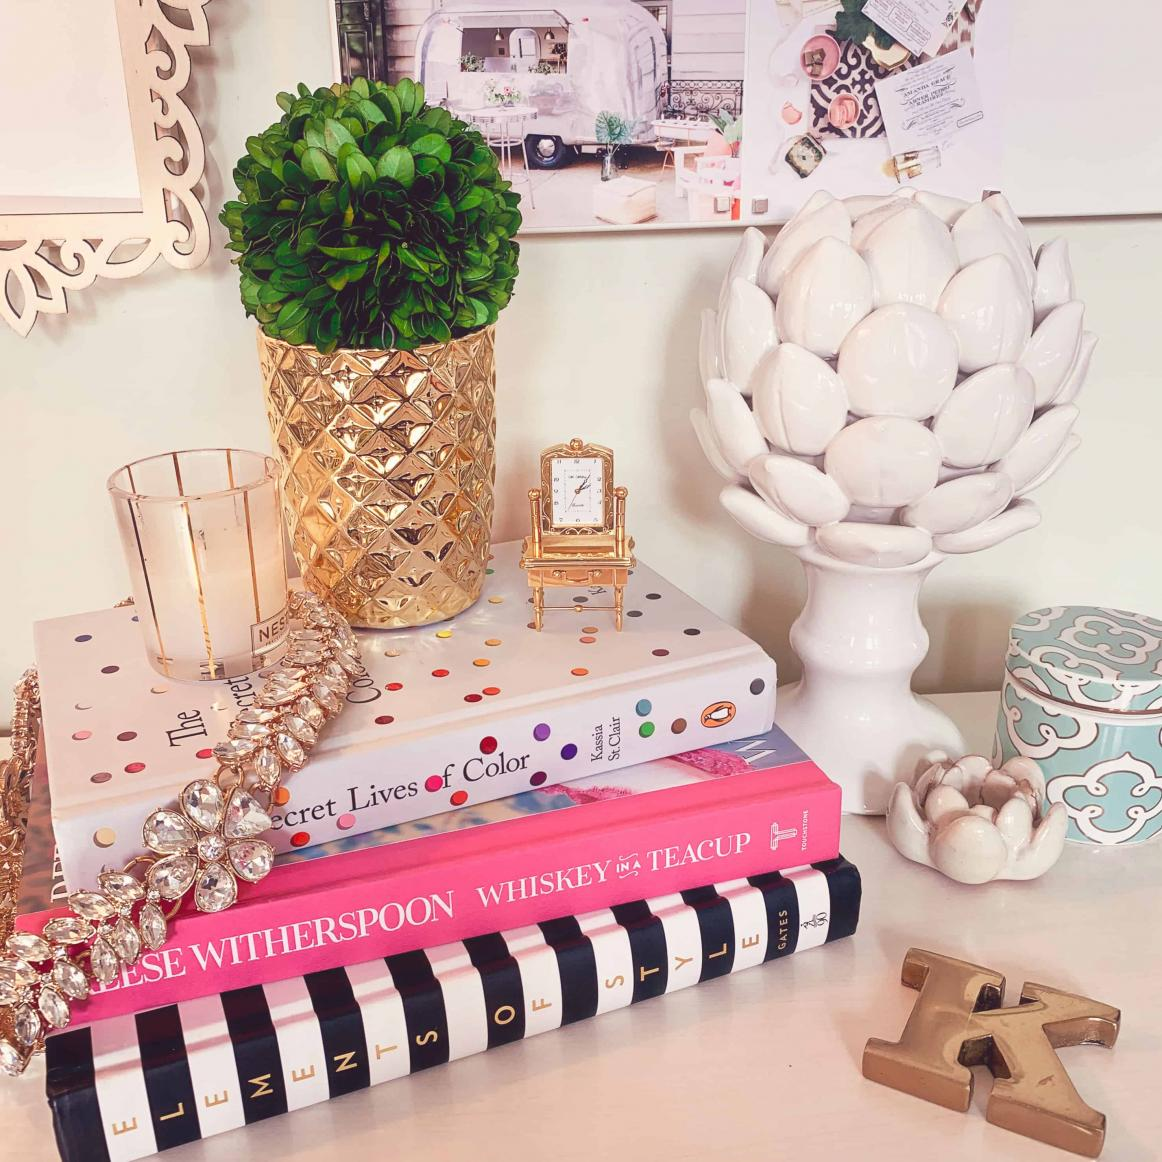 Styled desk featuring design books, candle and ceramic artichoke finial.